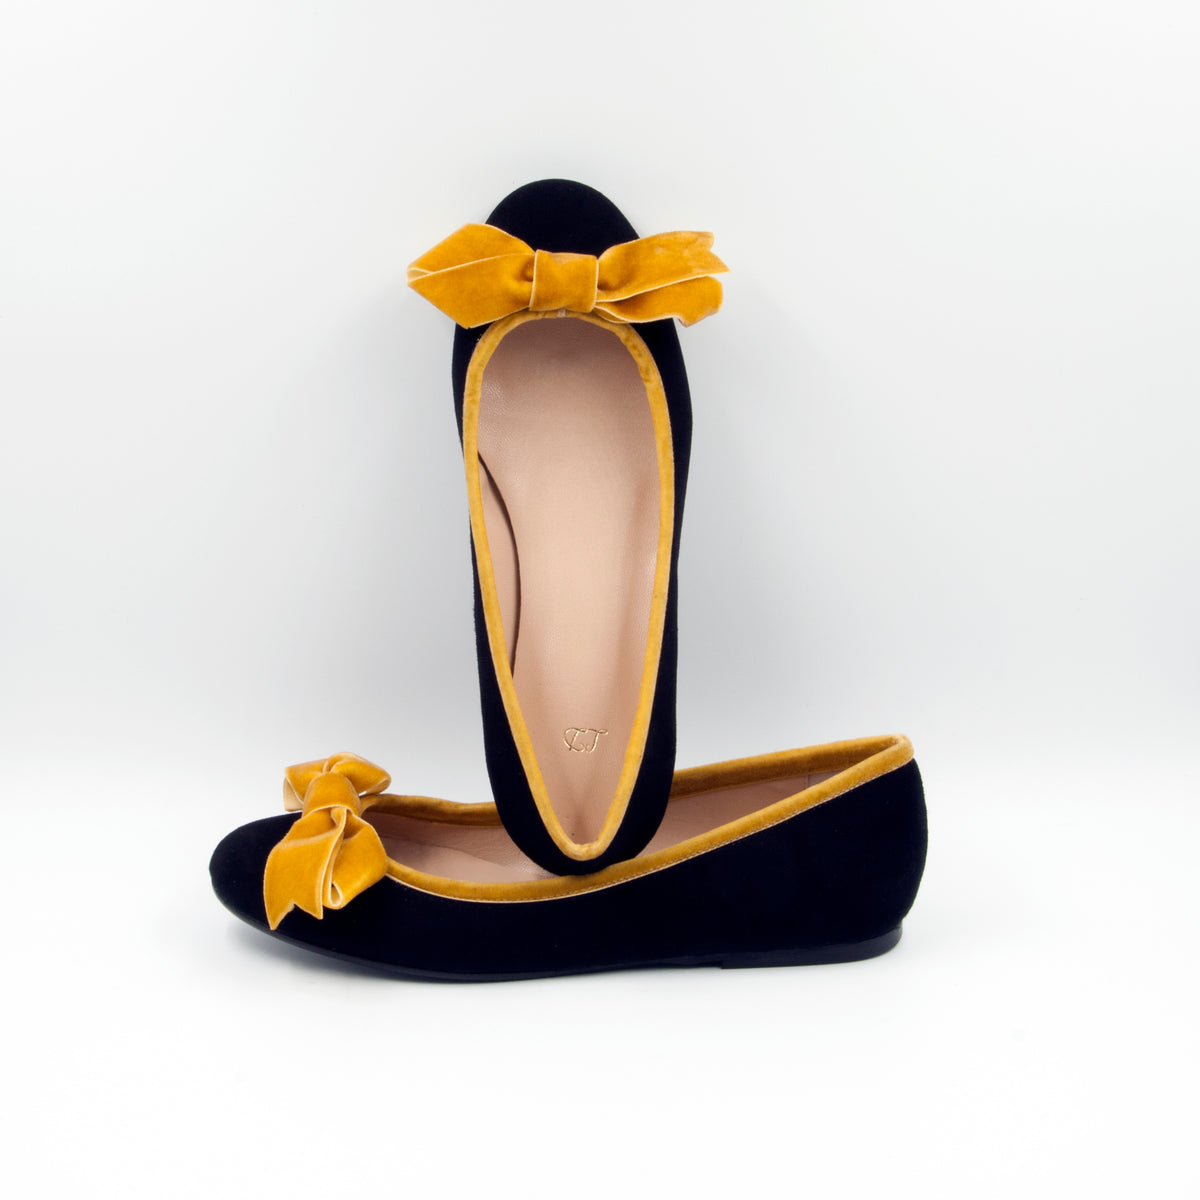 Lola Domecq Black suede ballerinas made in Spain